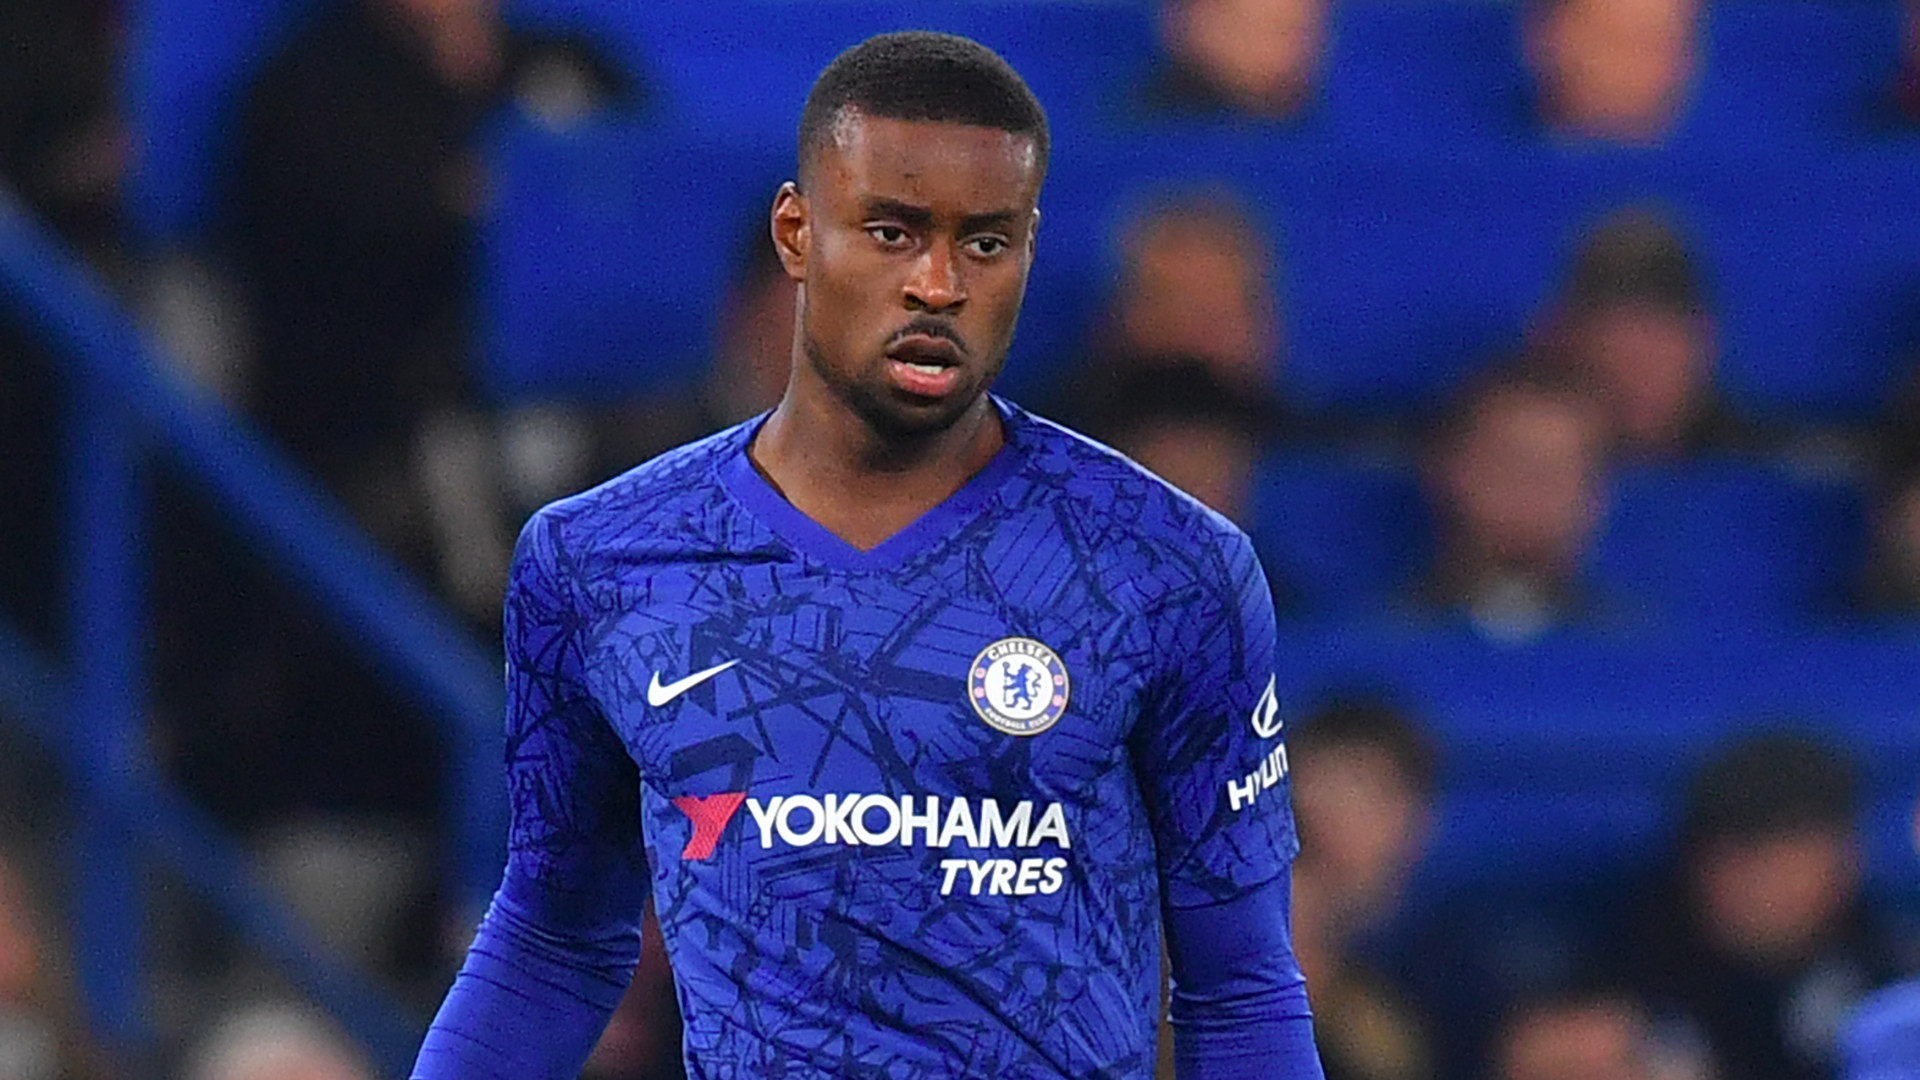 Chelsea defender Guehi completes loan move to Swansea   Goal.com